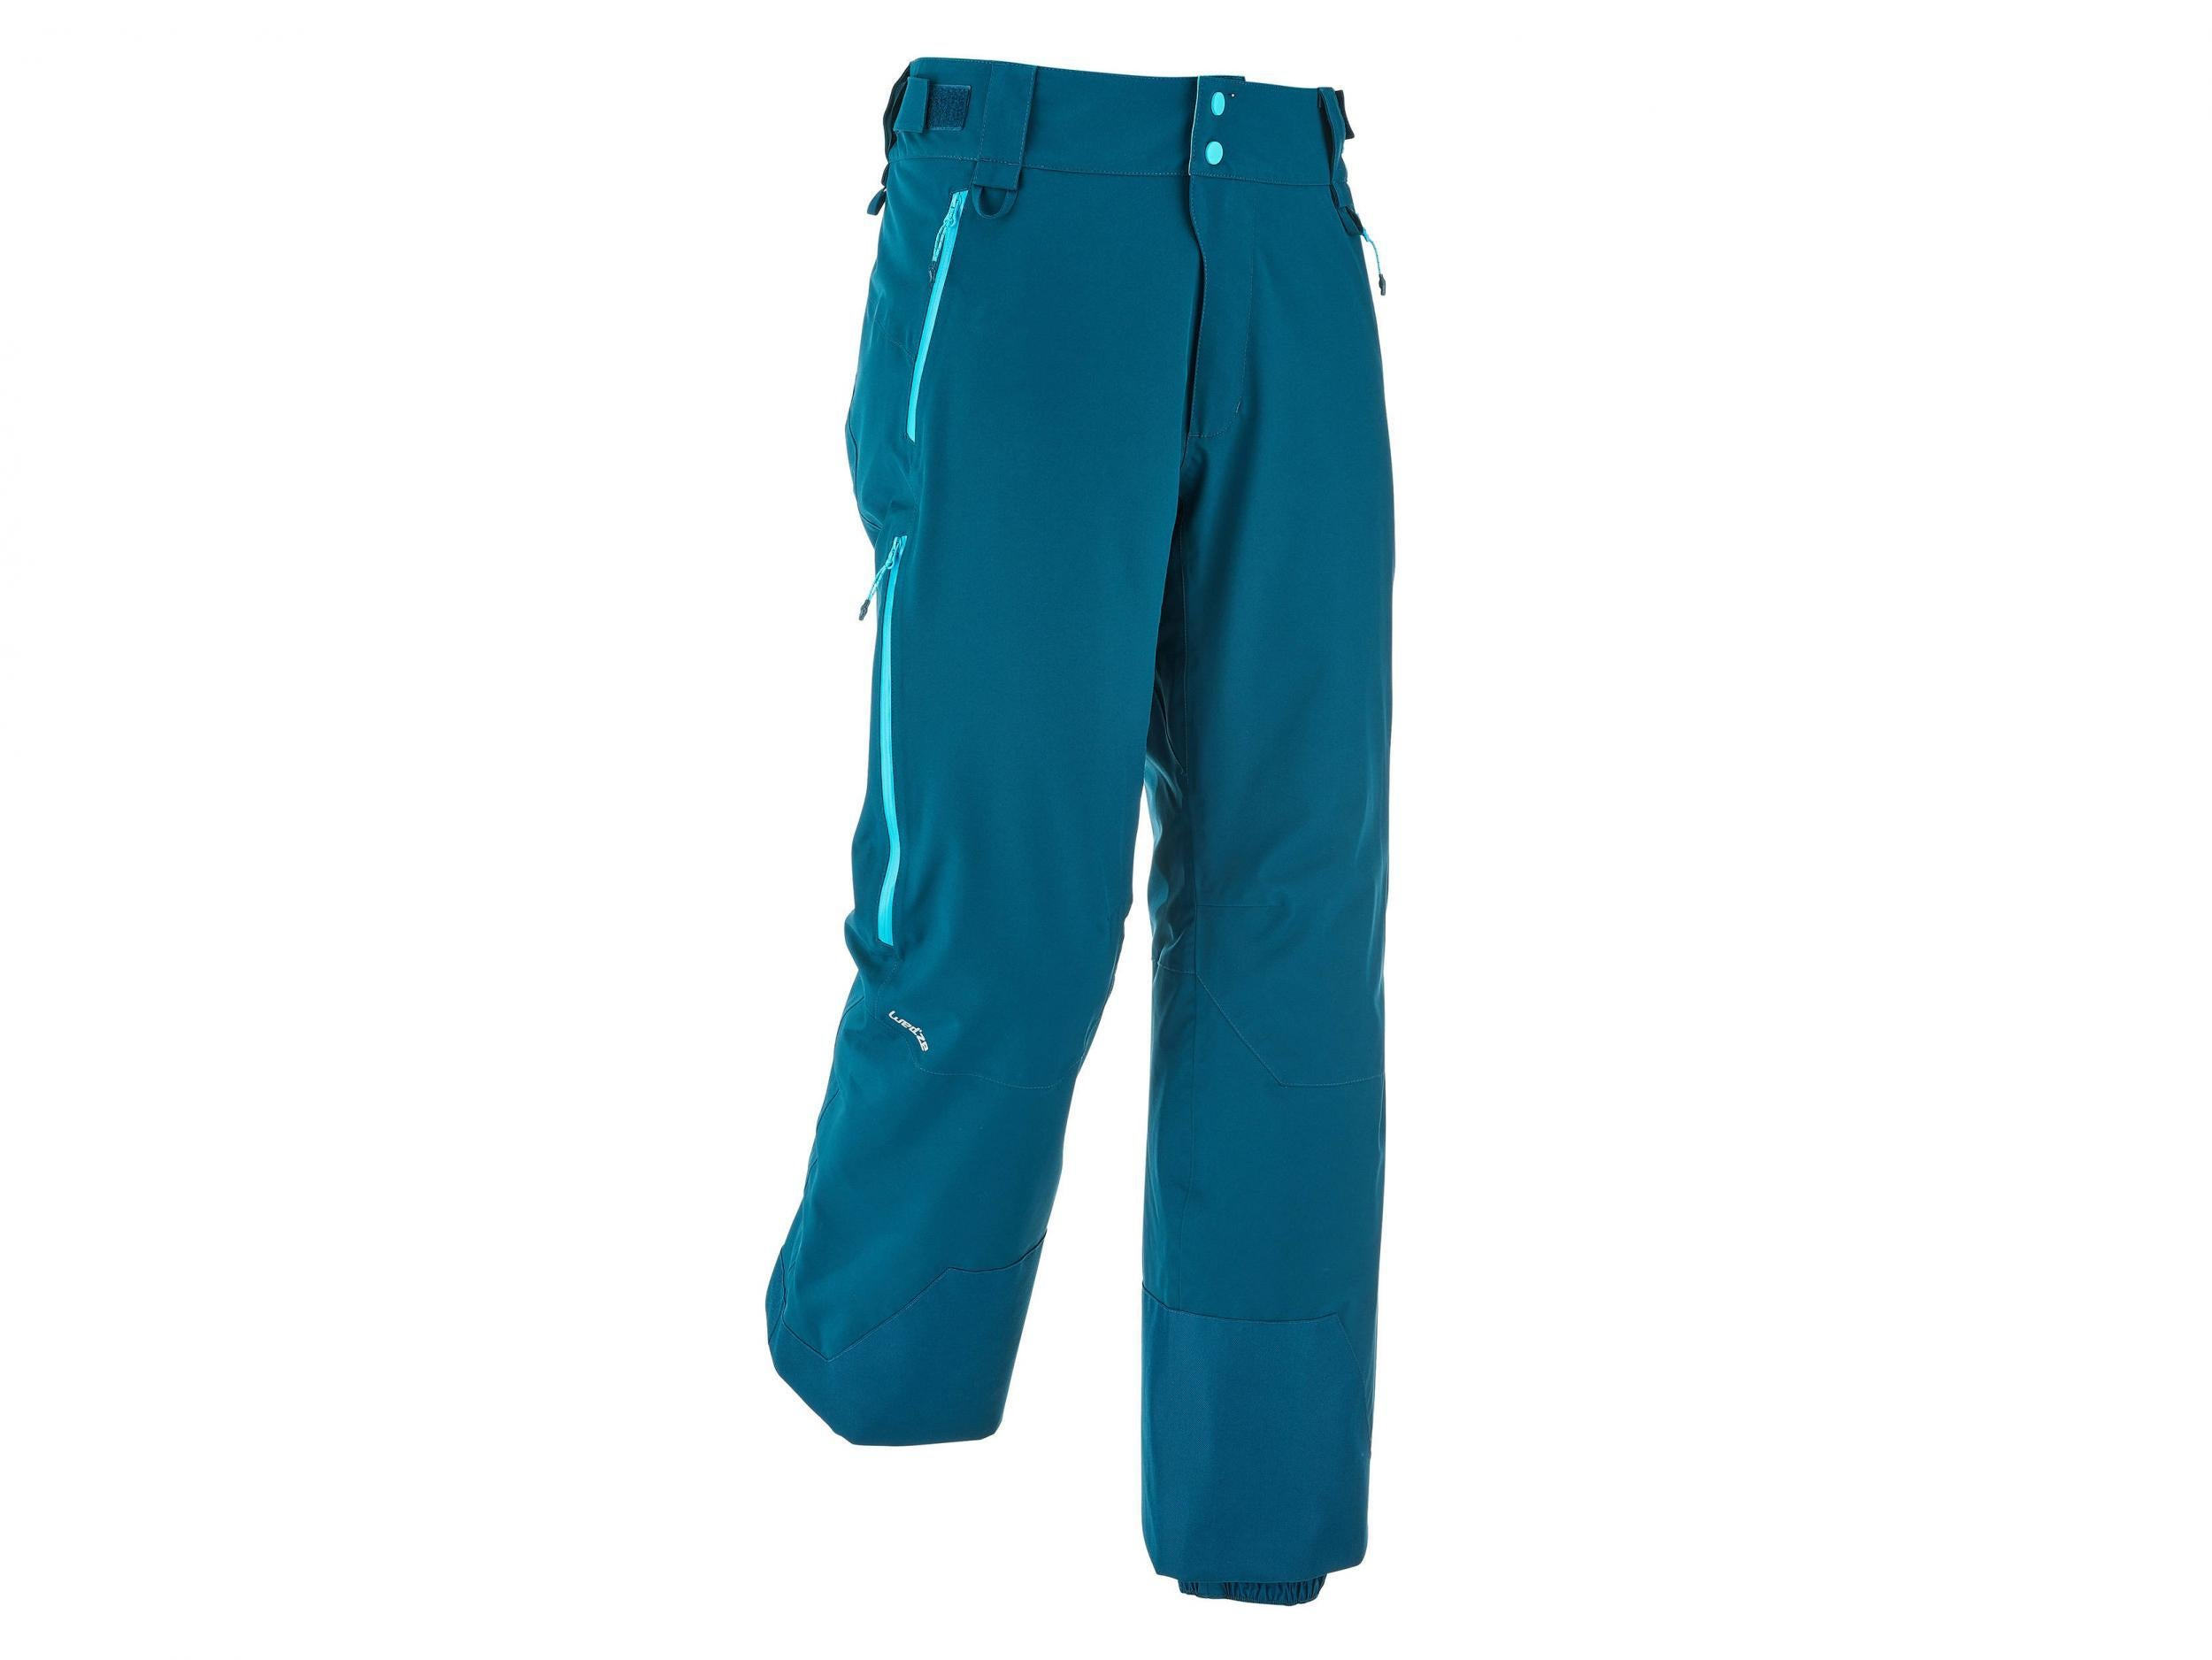 11 best men's ski and snowboard trousers 20182019 | The